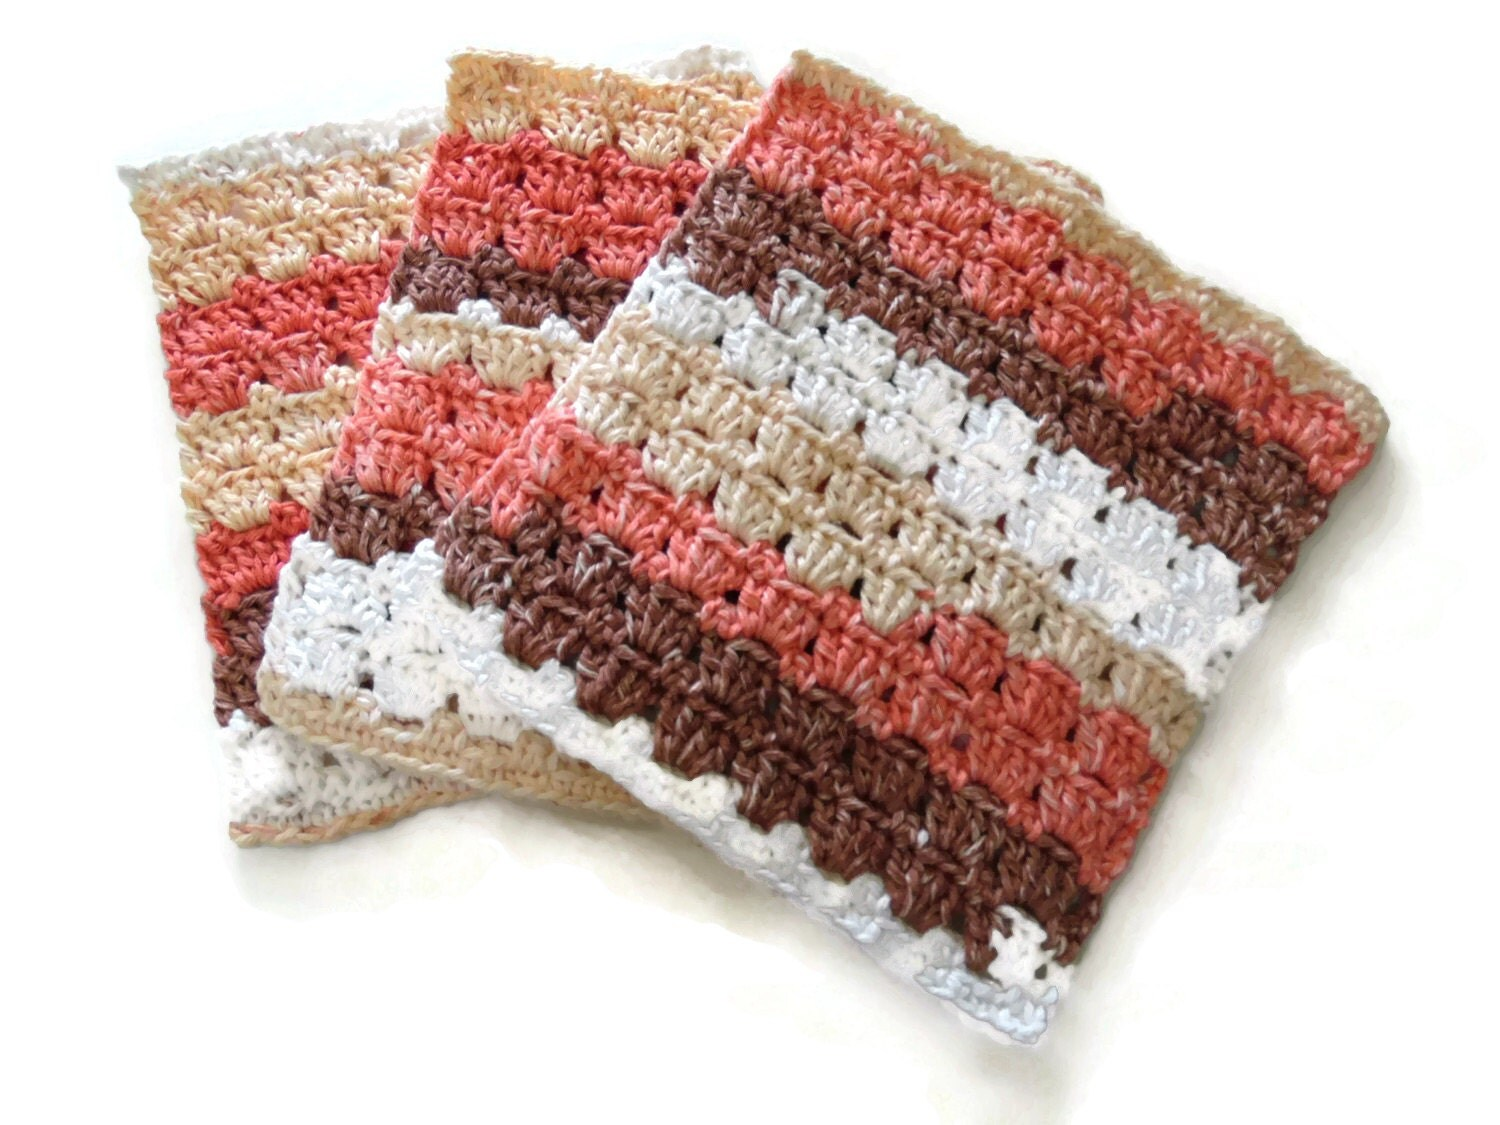 Crocheting Dish Rags : Three Crochet Dish Cloths Dish Rag Wash Cloth Peach by RignalJane